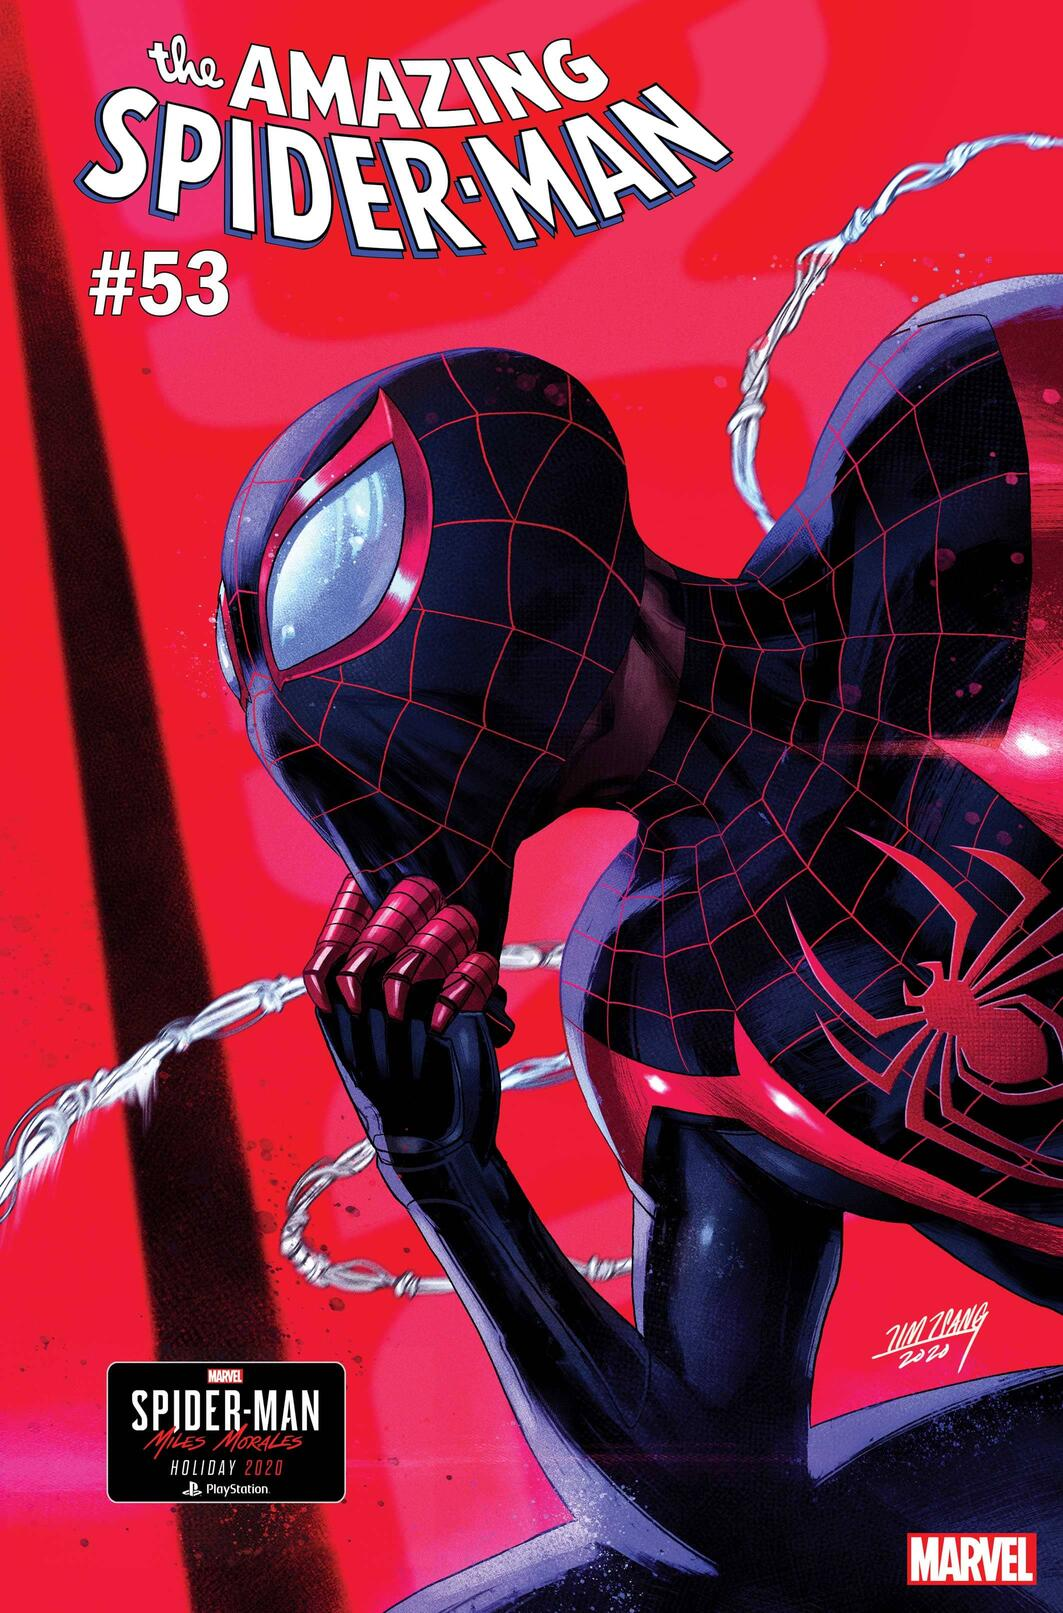 AMAZING SPIDER-MAN #53 cover by Marvel Games creative director Tim Tsang